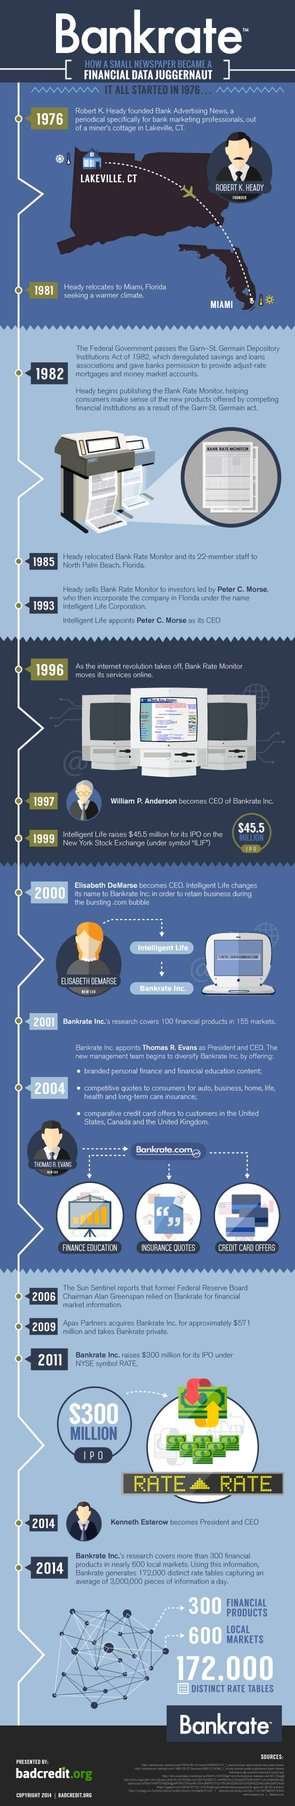 History of Bankrate Infographic